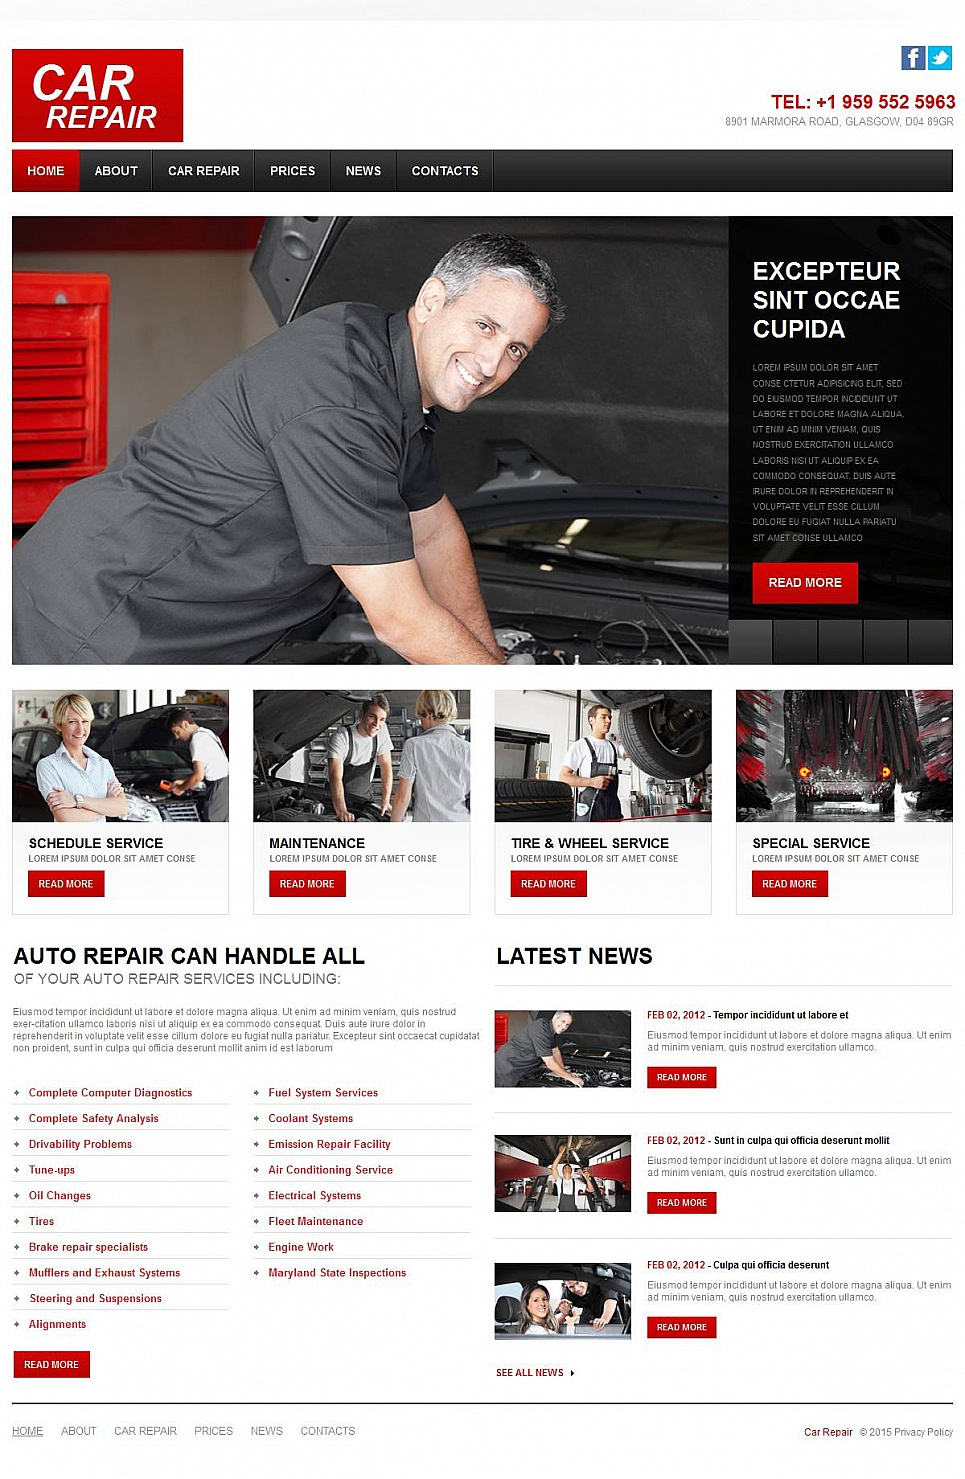 Car Repair Web Design - image